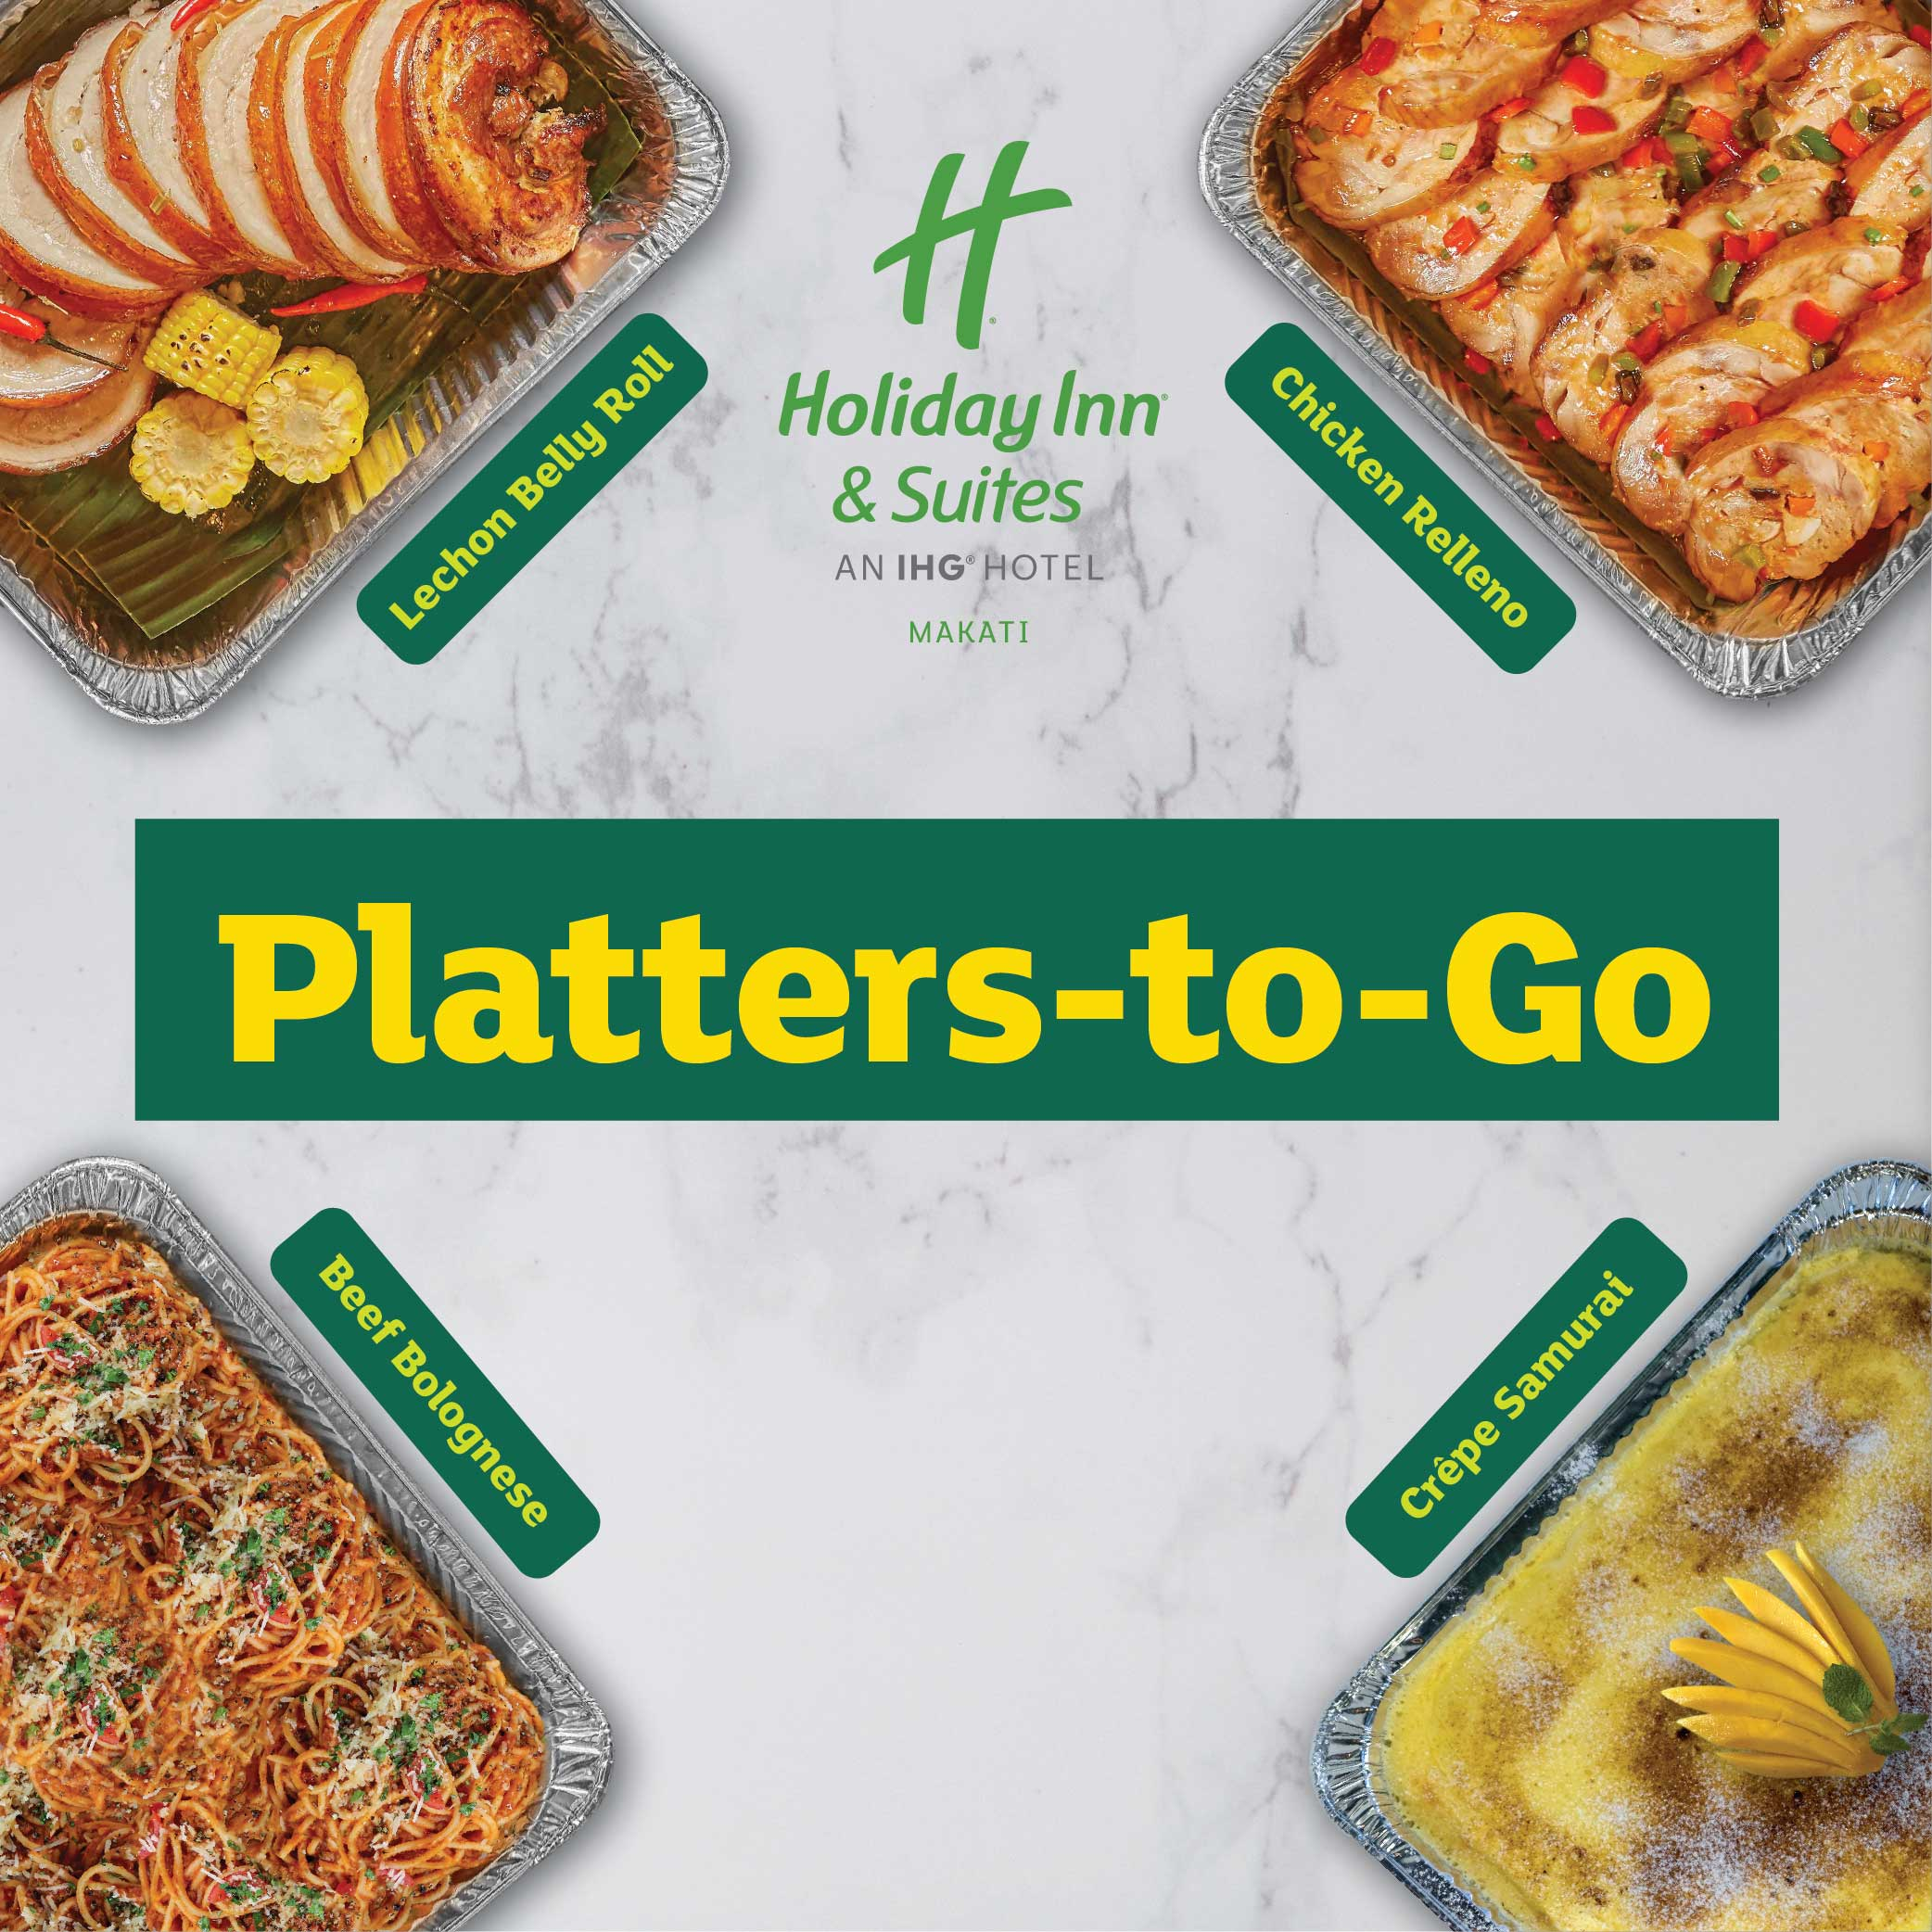 Platters-to-Go